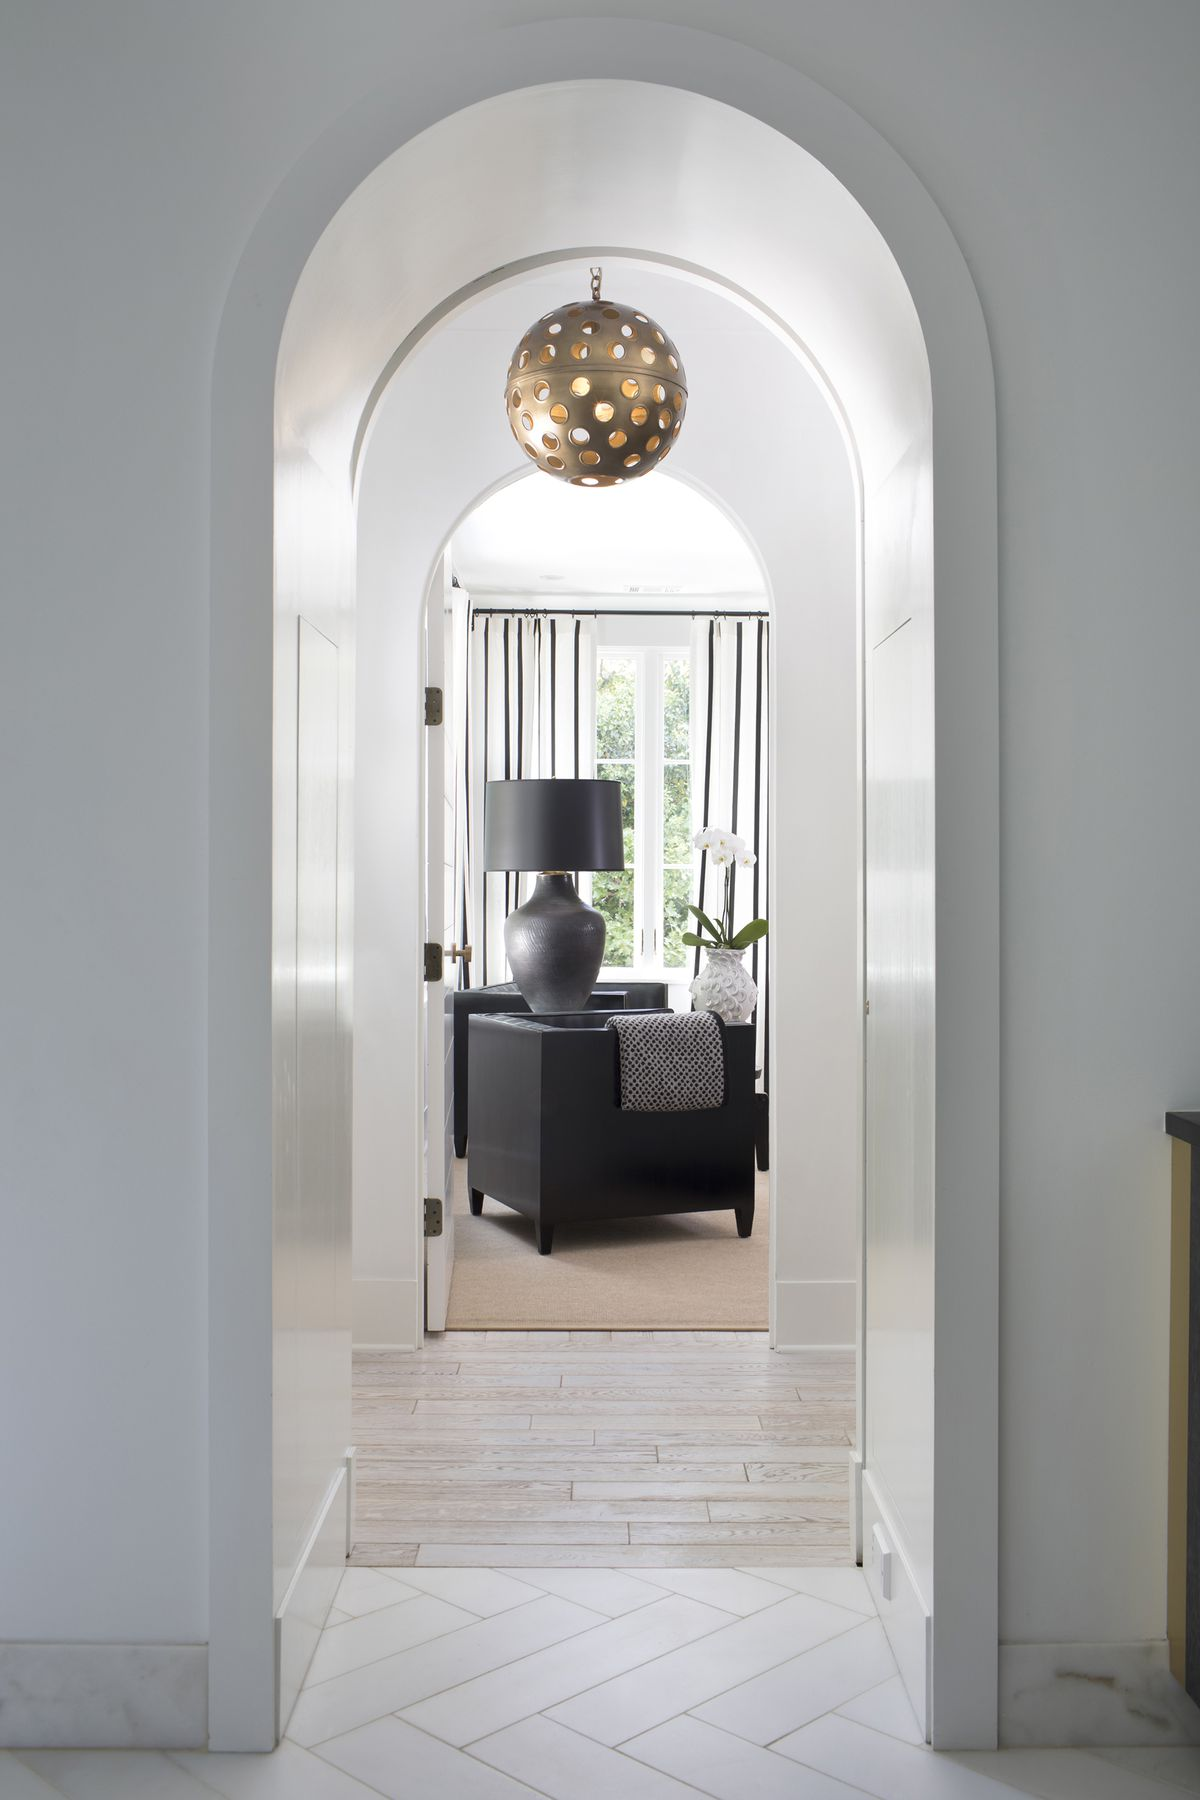 A series of arched doorways frame a large, circular light fixture pierced by circles.